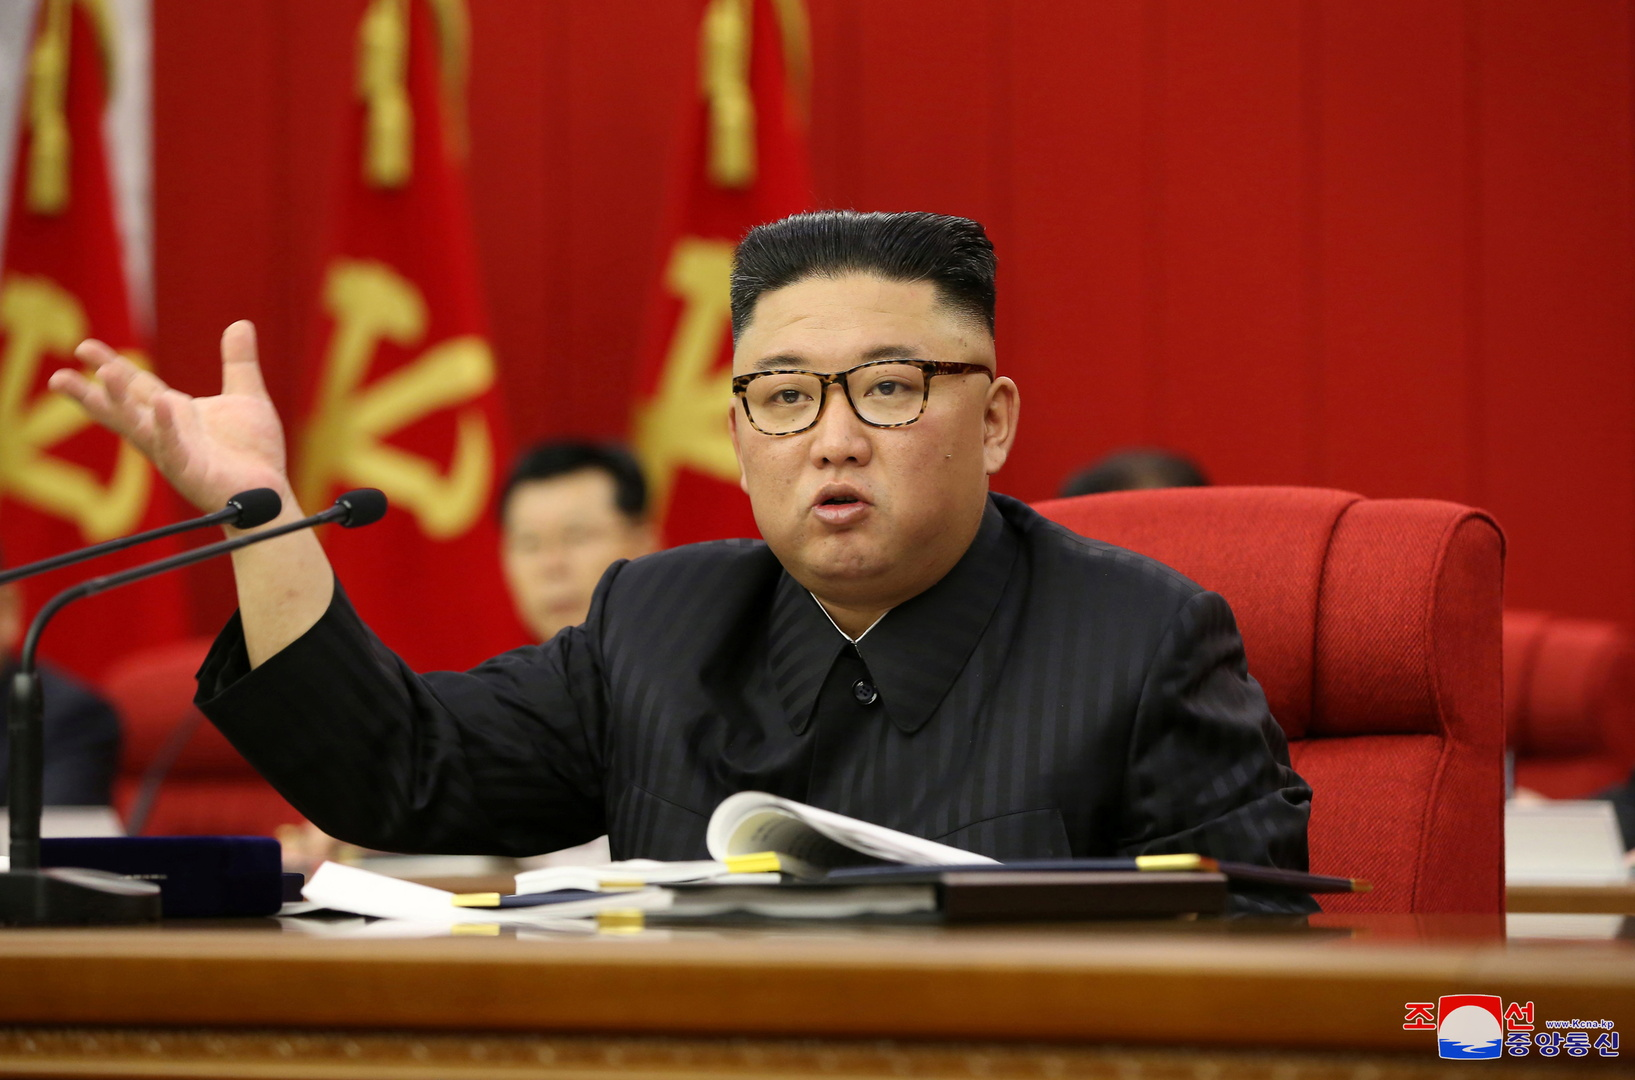 In a rare comment.. North Korean official TV reports that people are concerned about Kim's weight loss